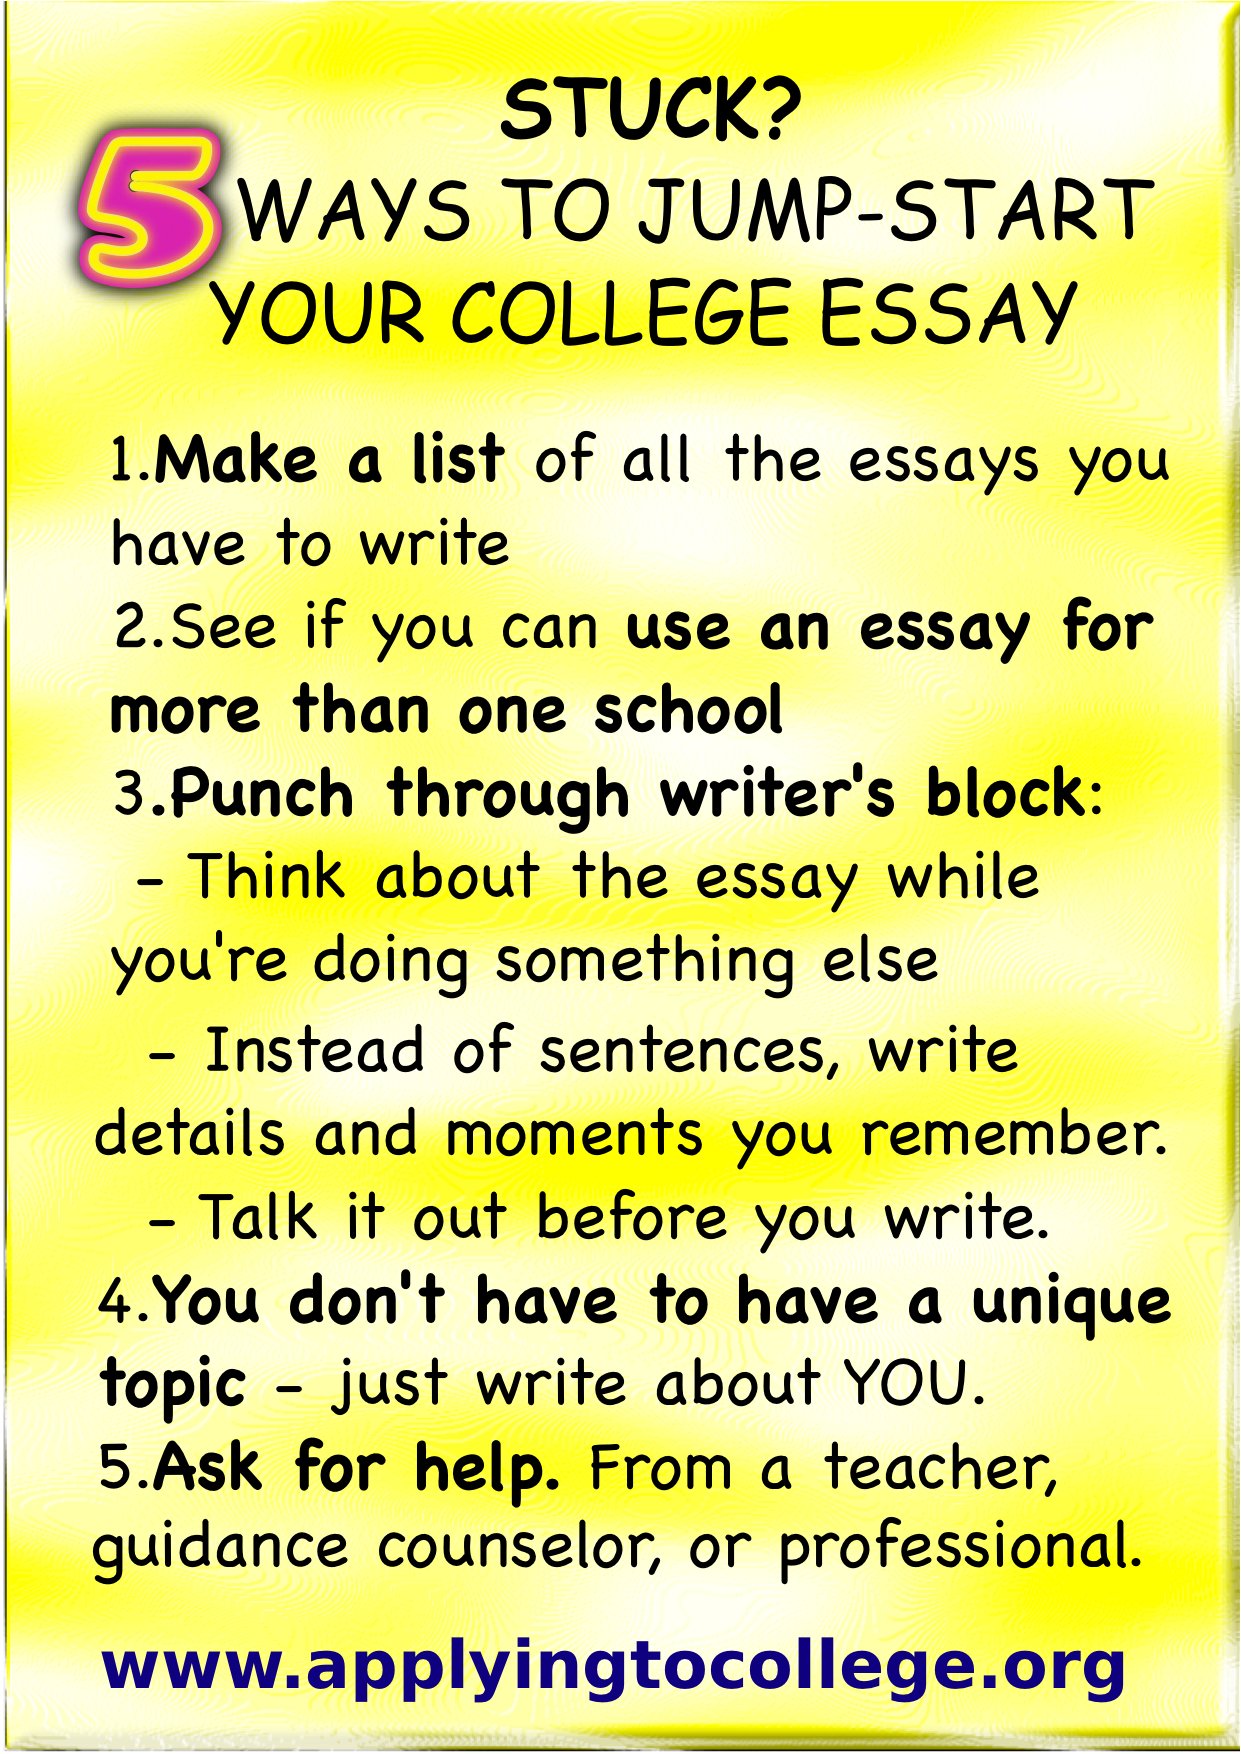 008 Good Way To Start An Essay Stuck Tips Jump Your College Applying Ways Essays L Striking About A Book Racism Different Full